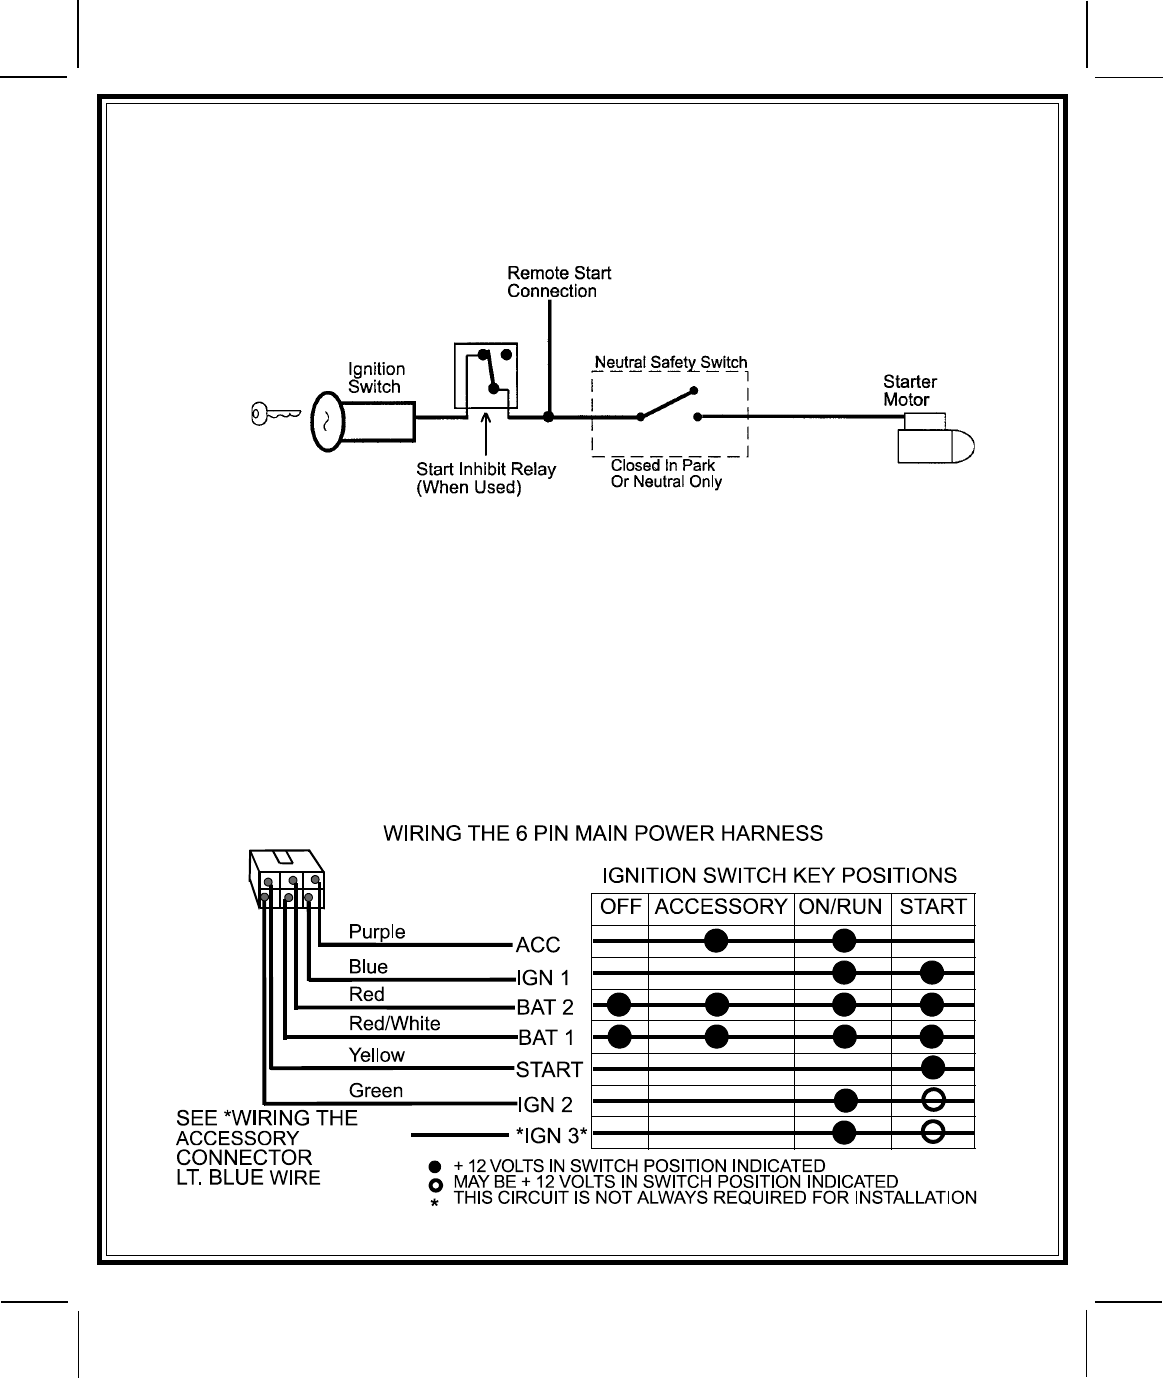 neutral safety relay wiring diagram audiovox as 9055t users manual 128 6148  audiovox as 9055t users manual 128 6148